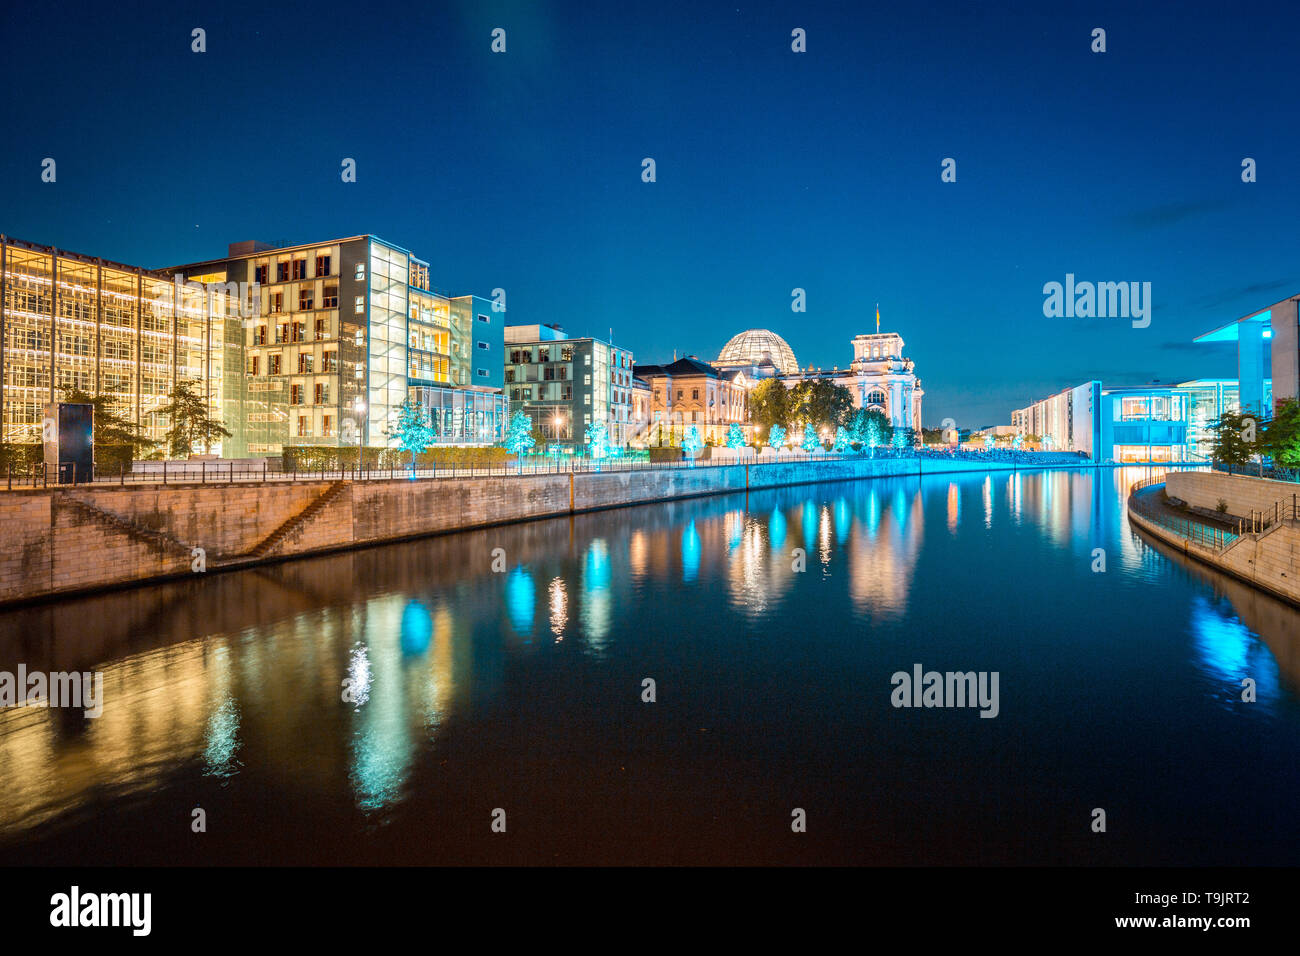 Panoramic twilight view of famous Berlin government district with Spree river during blue hour at dusk, central Berlin Mitte, Germany - Stock Image